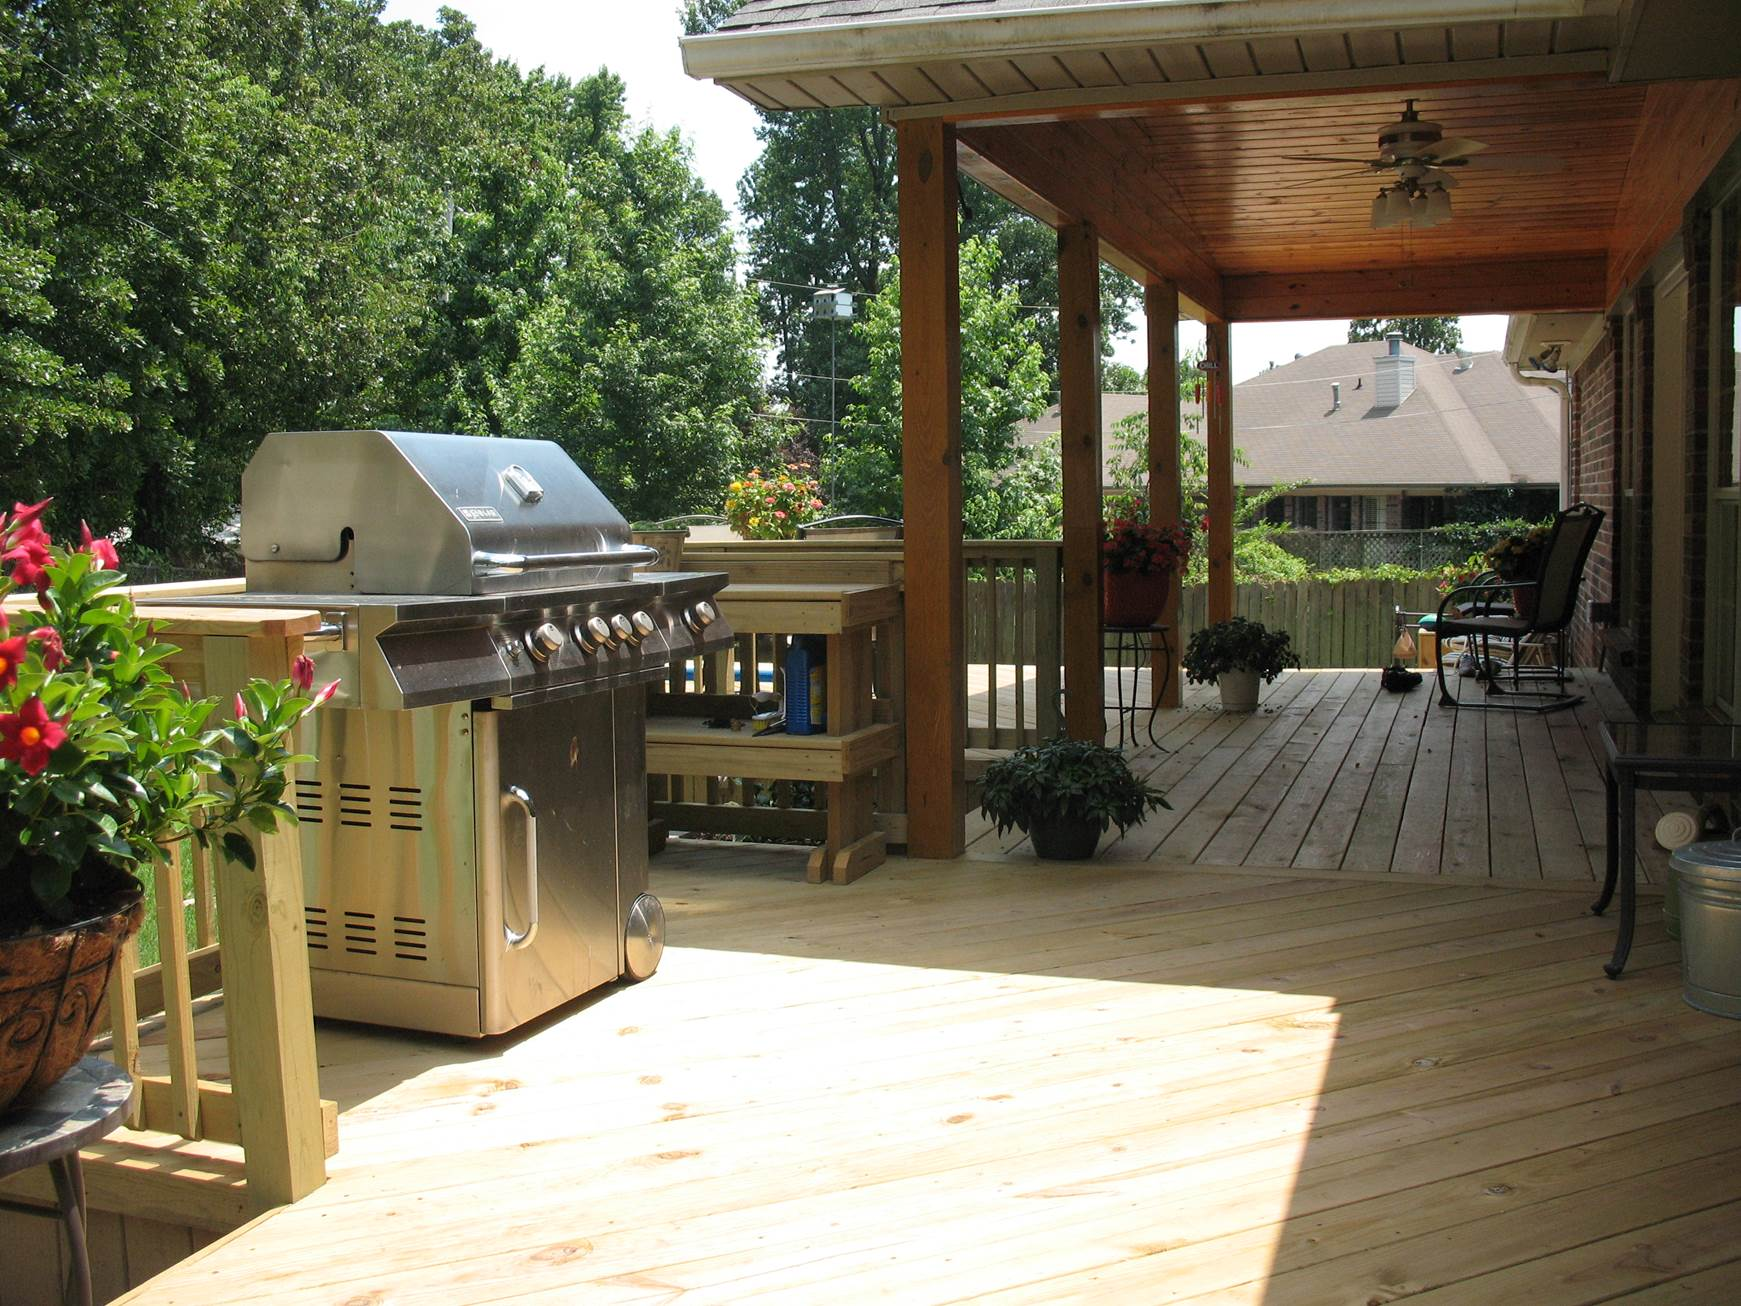 St. Louis Mo: Grill Decks vs Outdoor Kitchens by Archadeck ... on Patio Grilling Area  id=86982